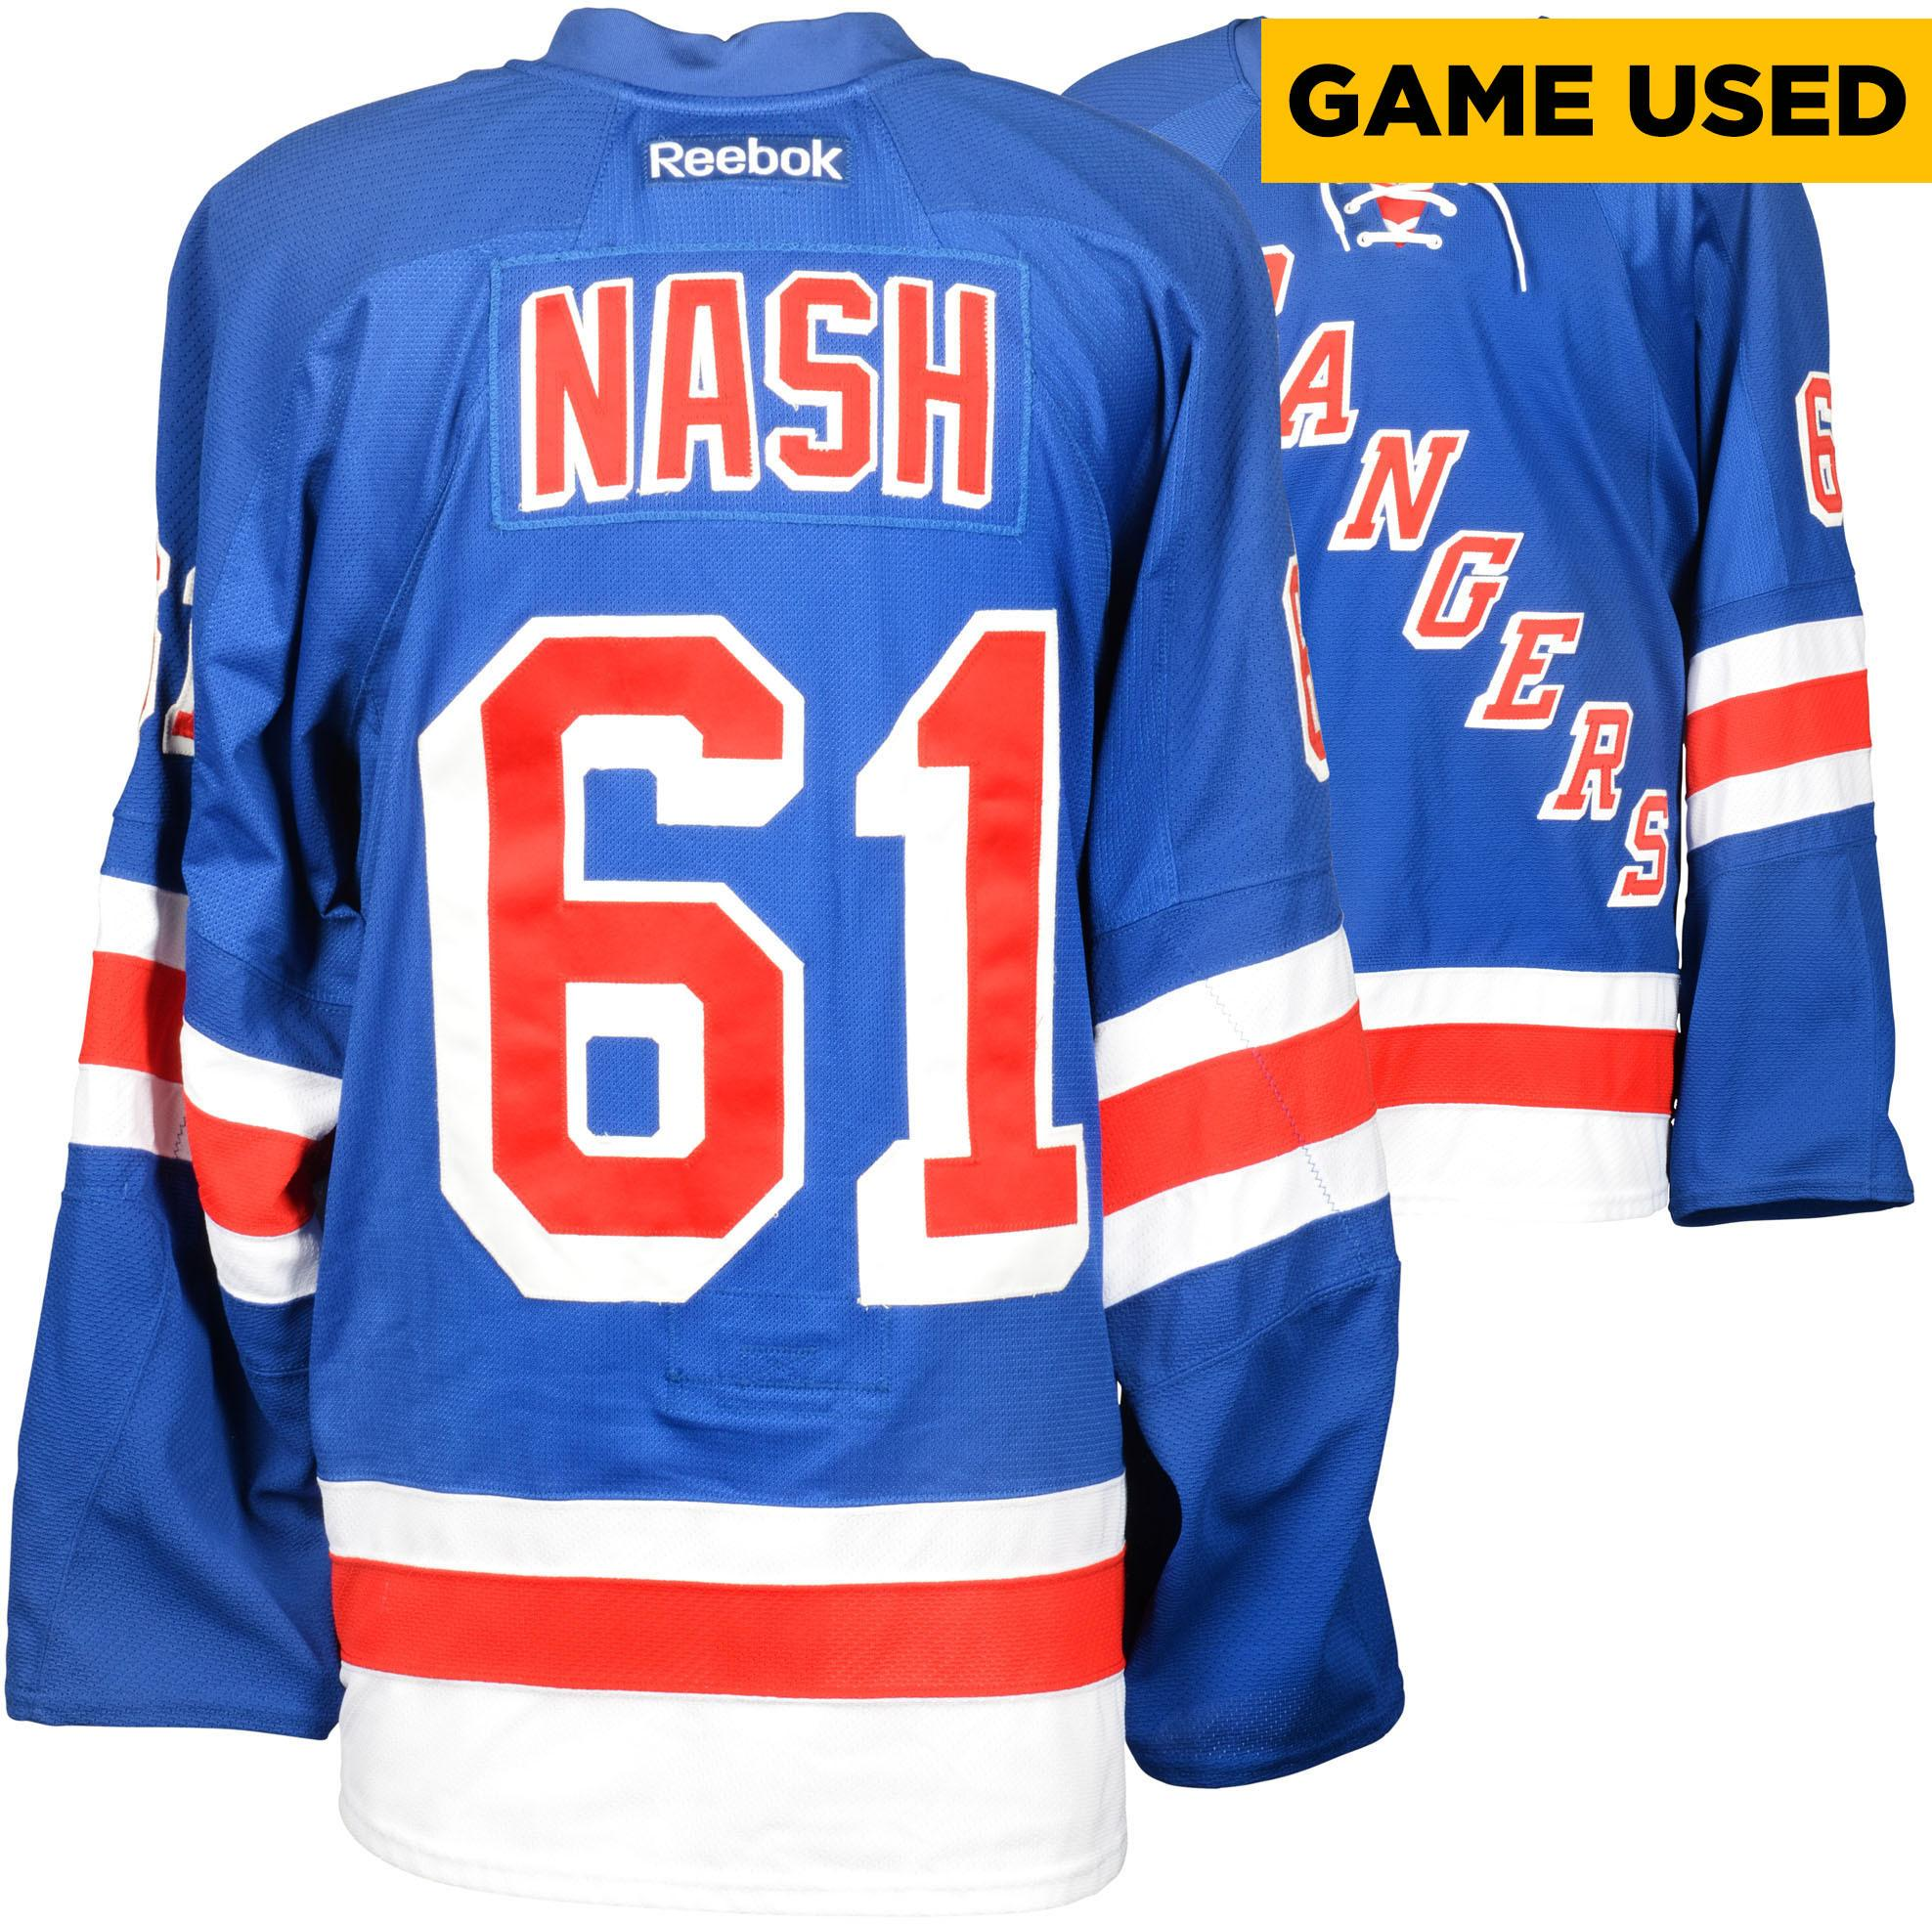 Rick Nash New York Rangers Game-Used Rangers Blue Jersey From The 2014-2015 Season - Fanatics Authentic Certified